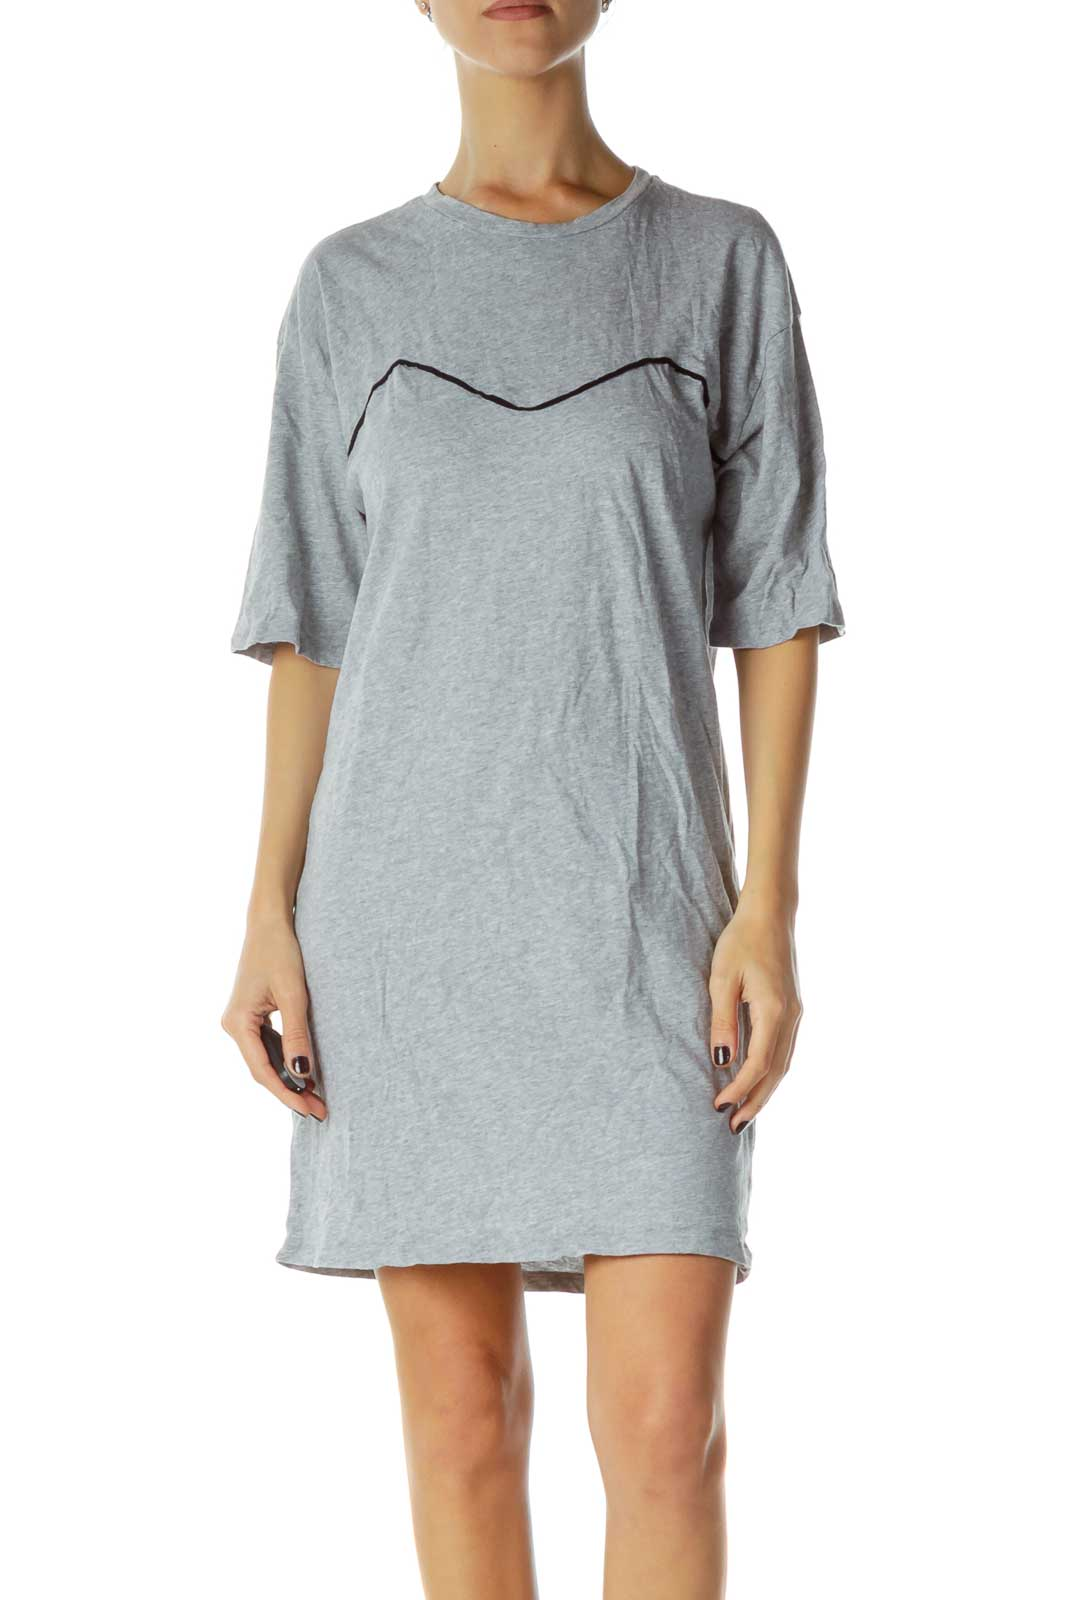 Gray Jersey-Knit Dress Front